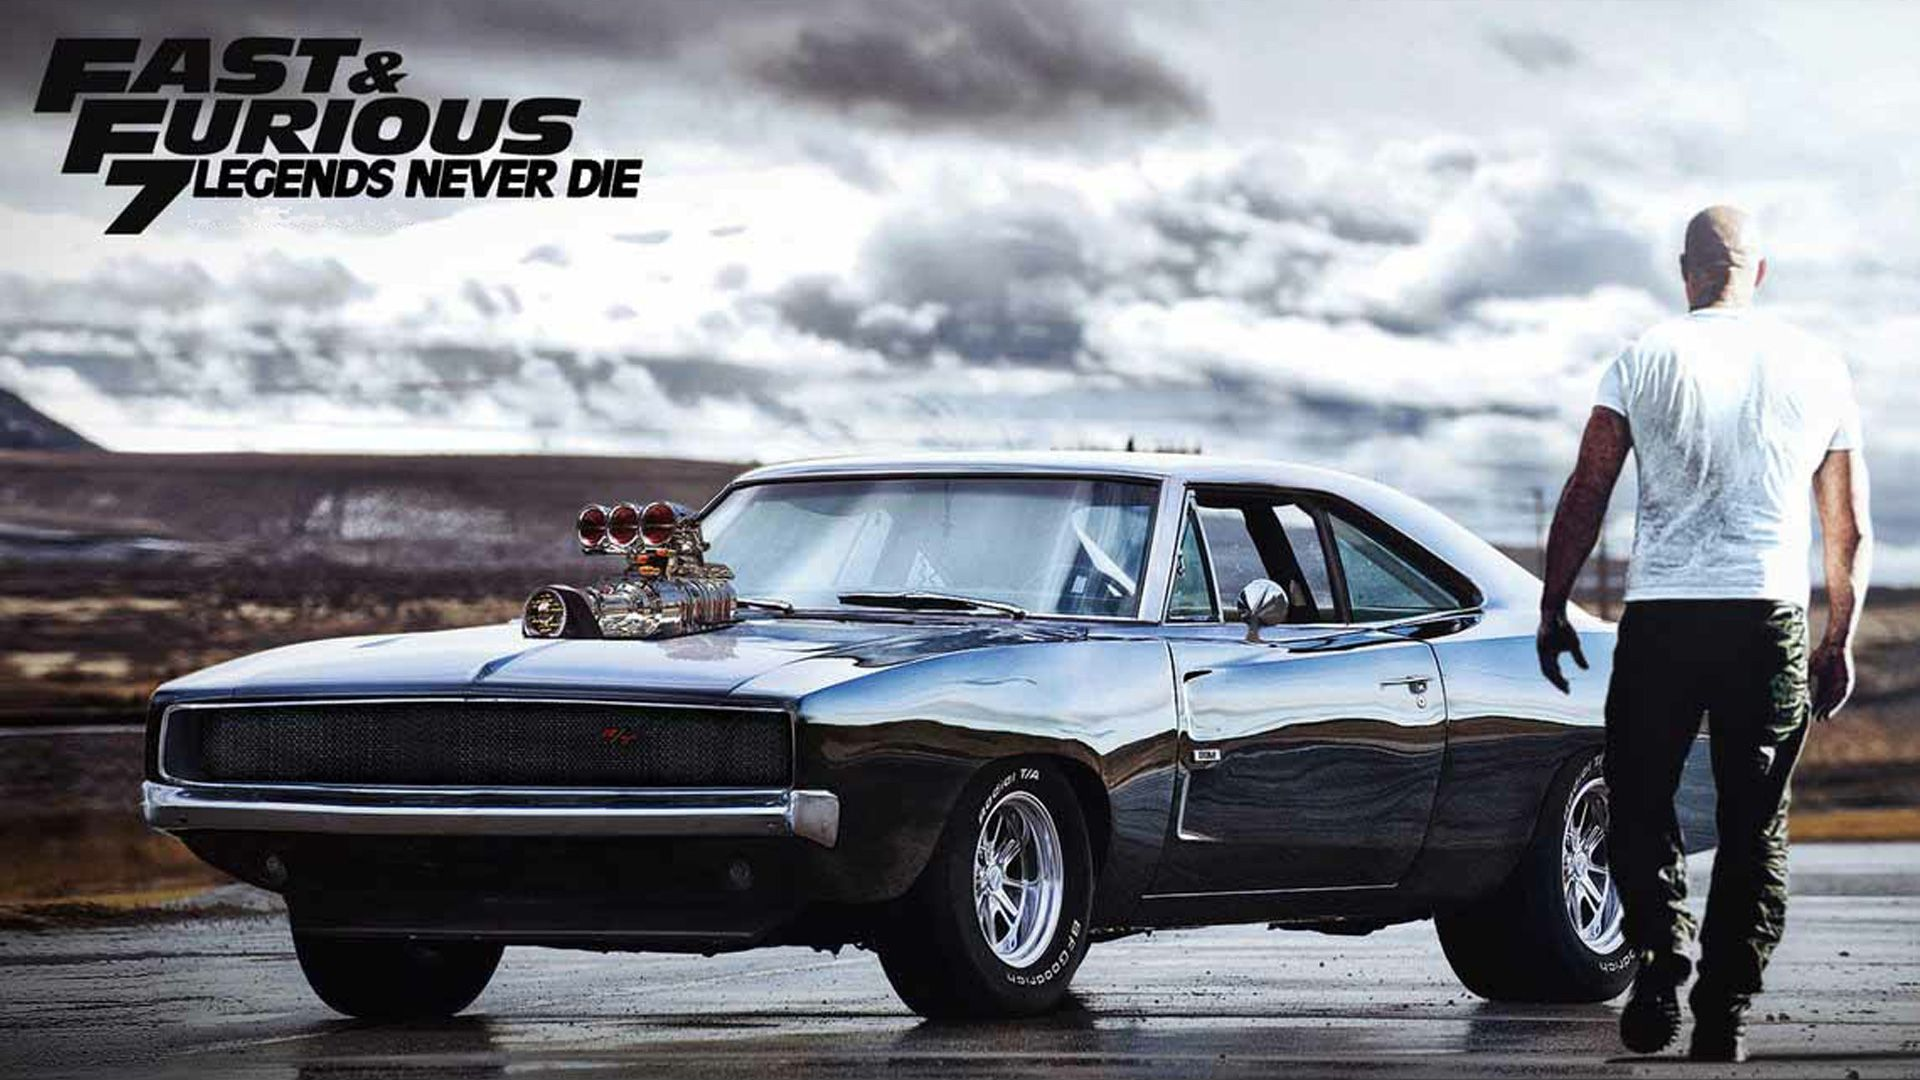 Fast And Furious Hd Wallpapers Muscle Cars Fast And Furious Cars Movie